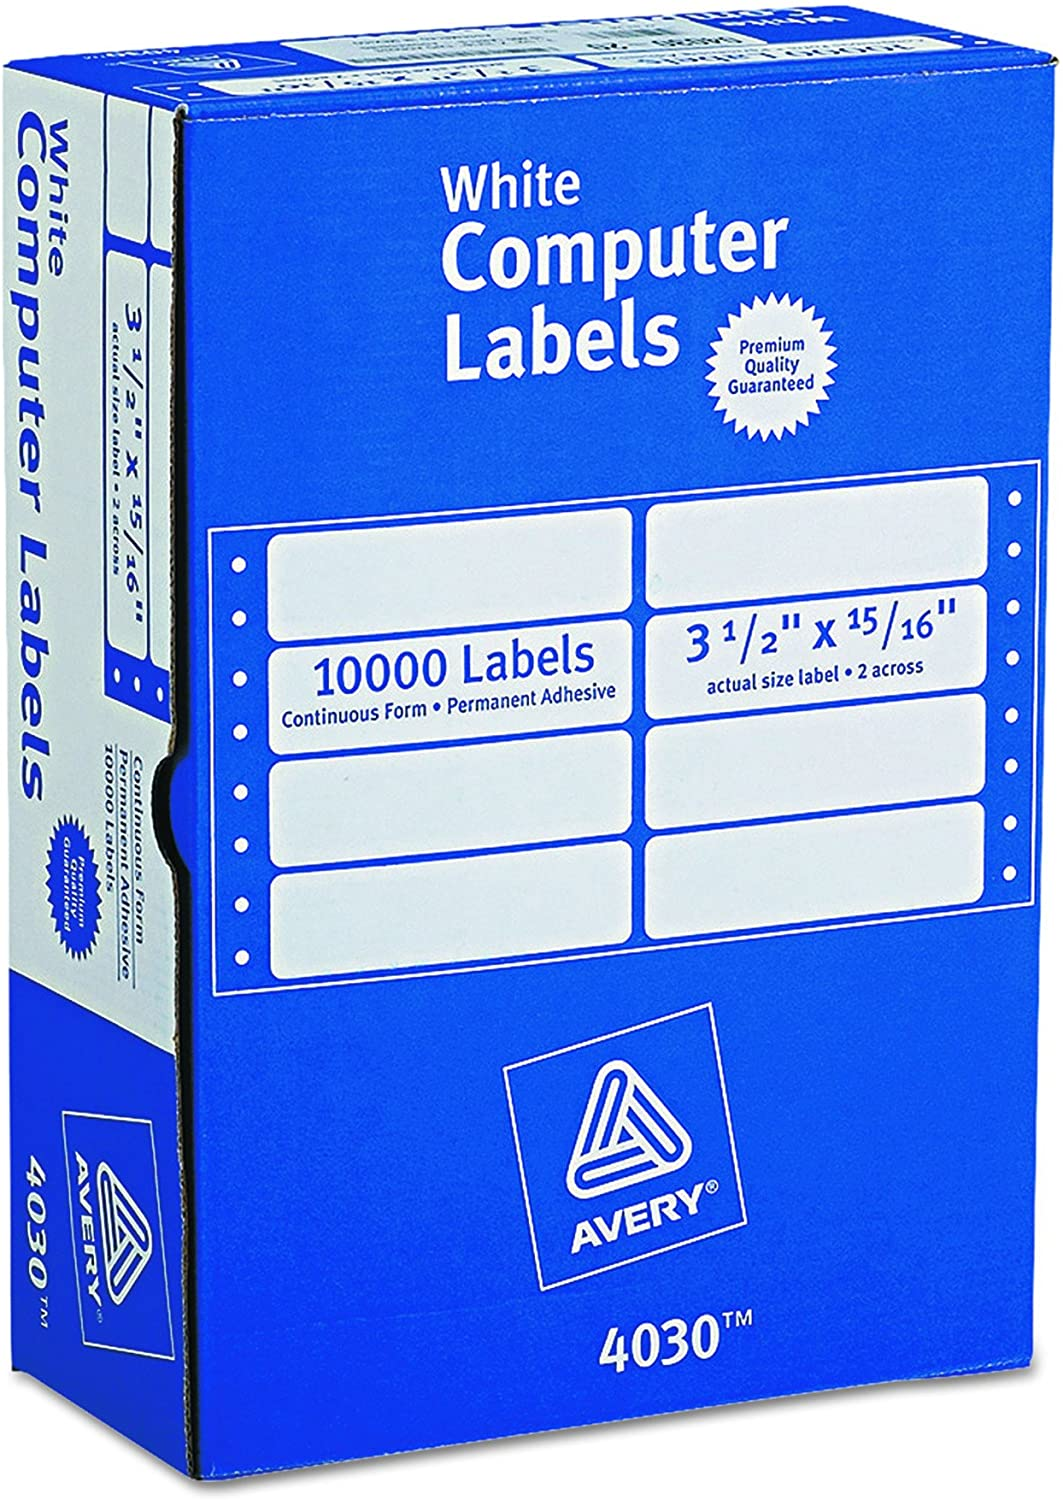 Avery Continuous Form Computer Labels for Pin-Fed Printers 3-1/2 x 15/16, Box of 10, 000 (4030), White : Address Labels : Office Products